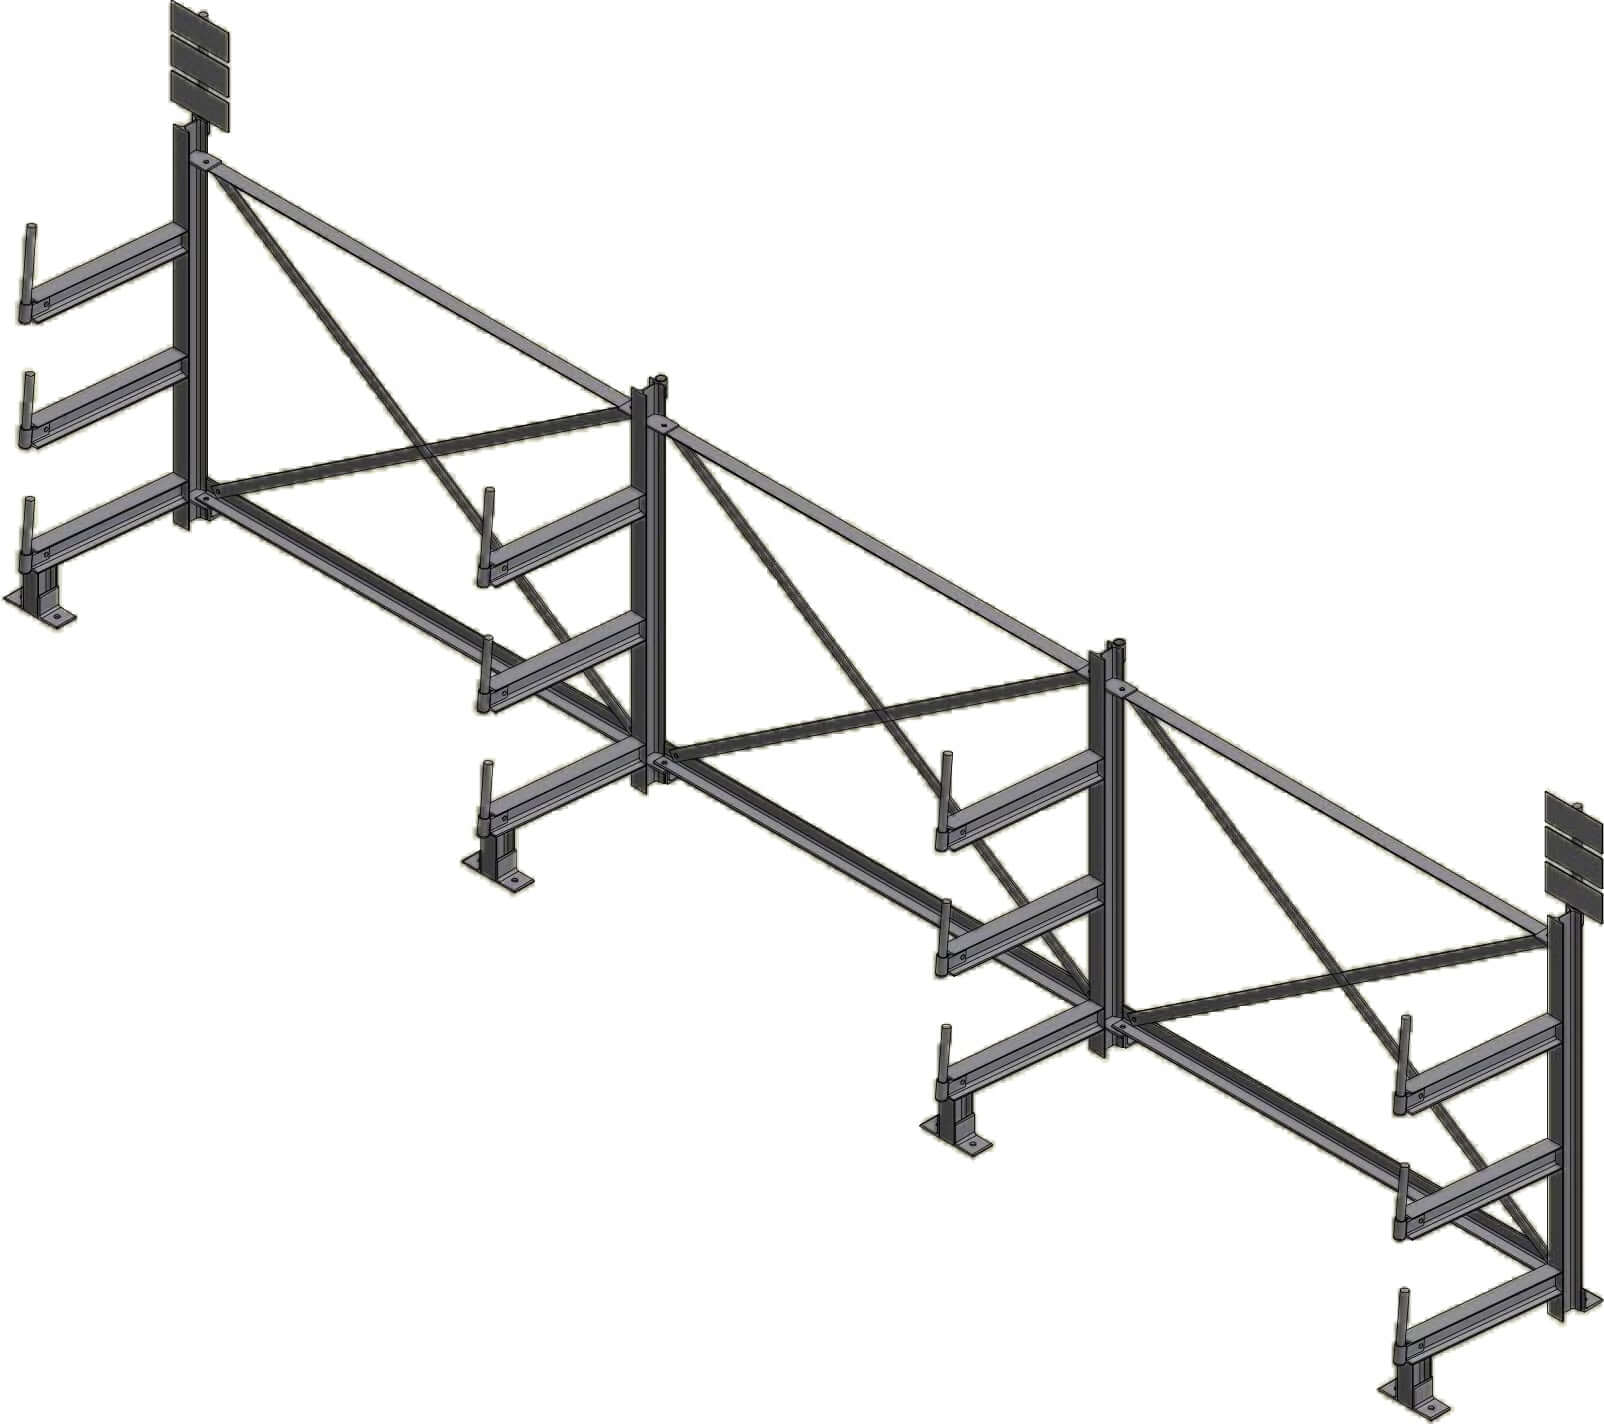 Dexco Structural I Beam Specialized Rack Systems Ross